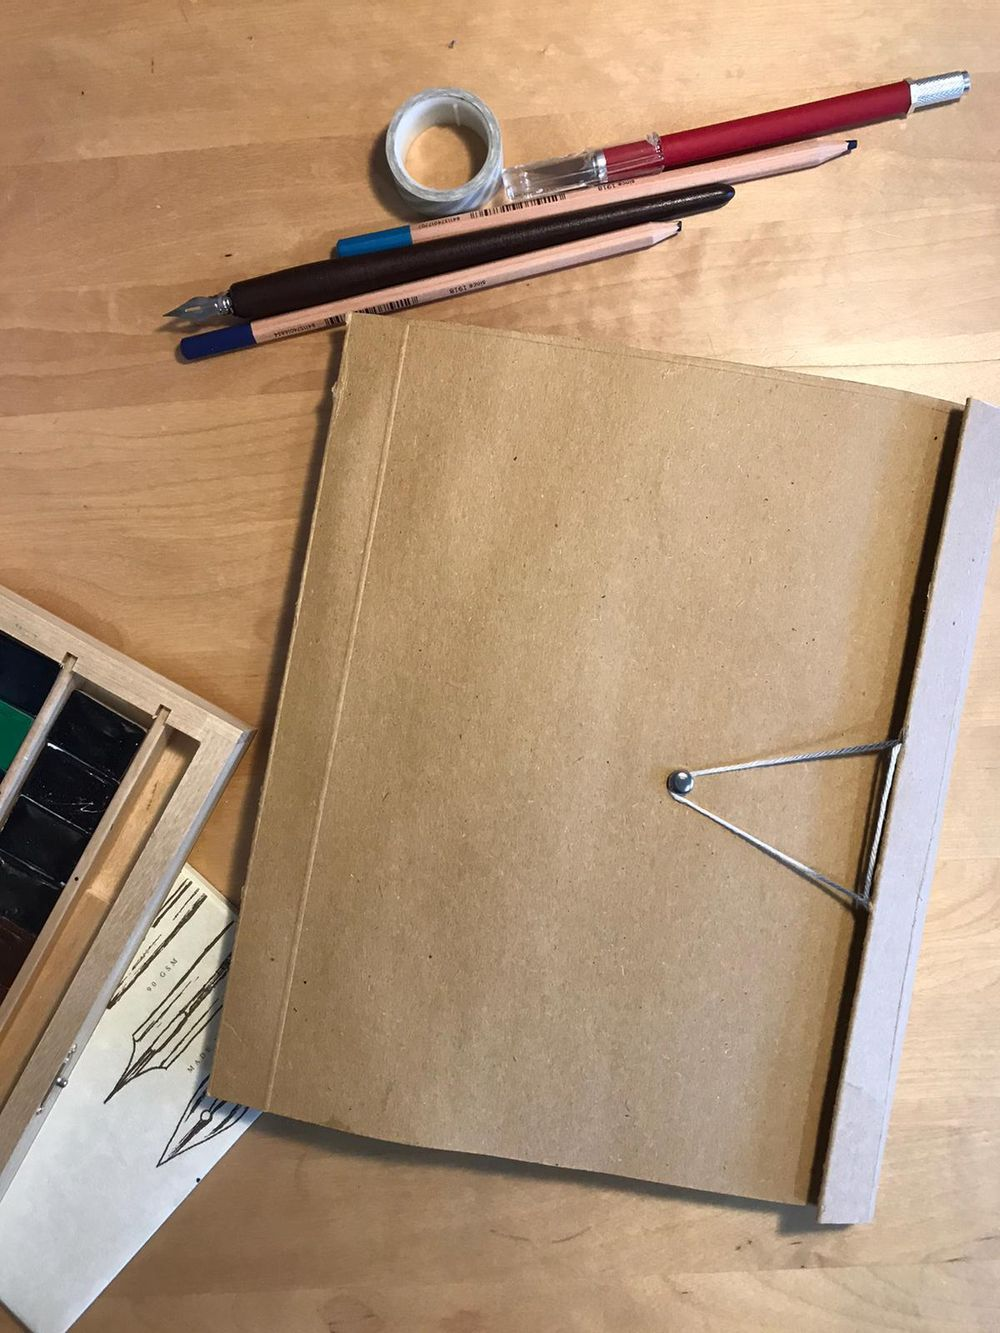 My sketchbook - image 2 - student project